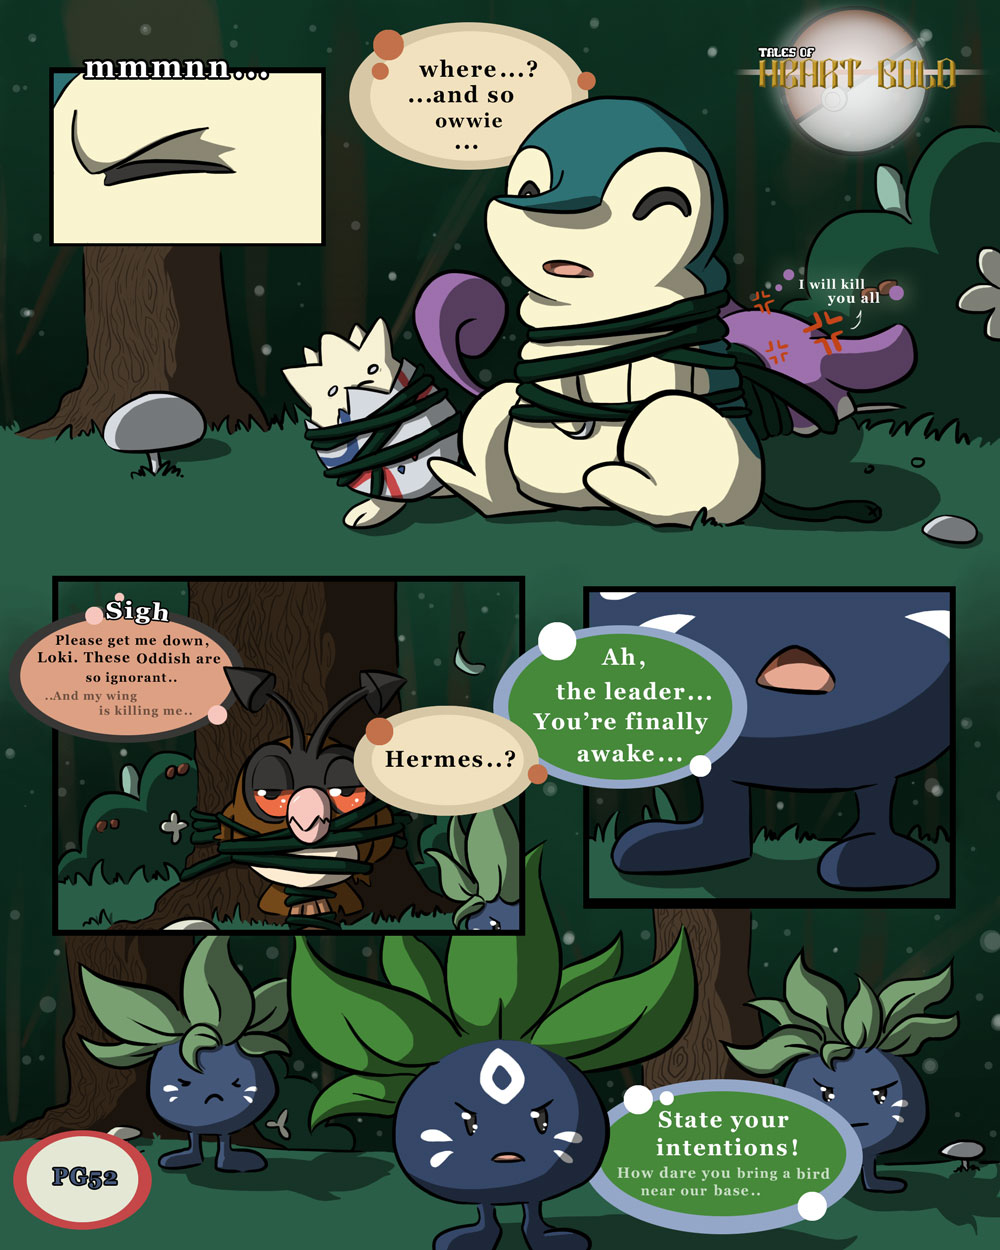 Into Woods PG6: State Intentions!